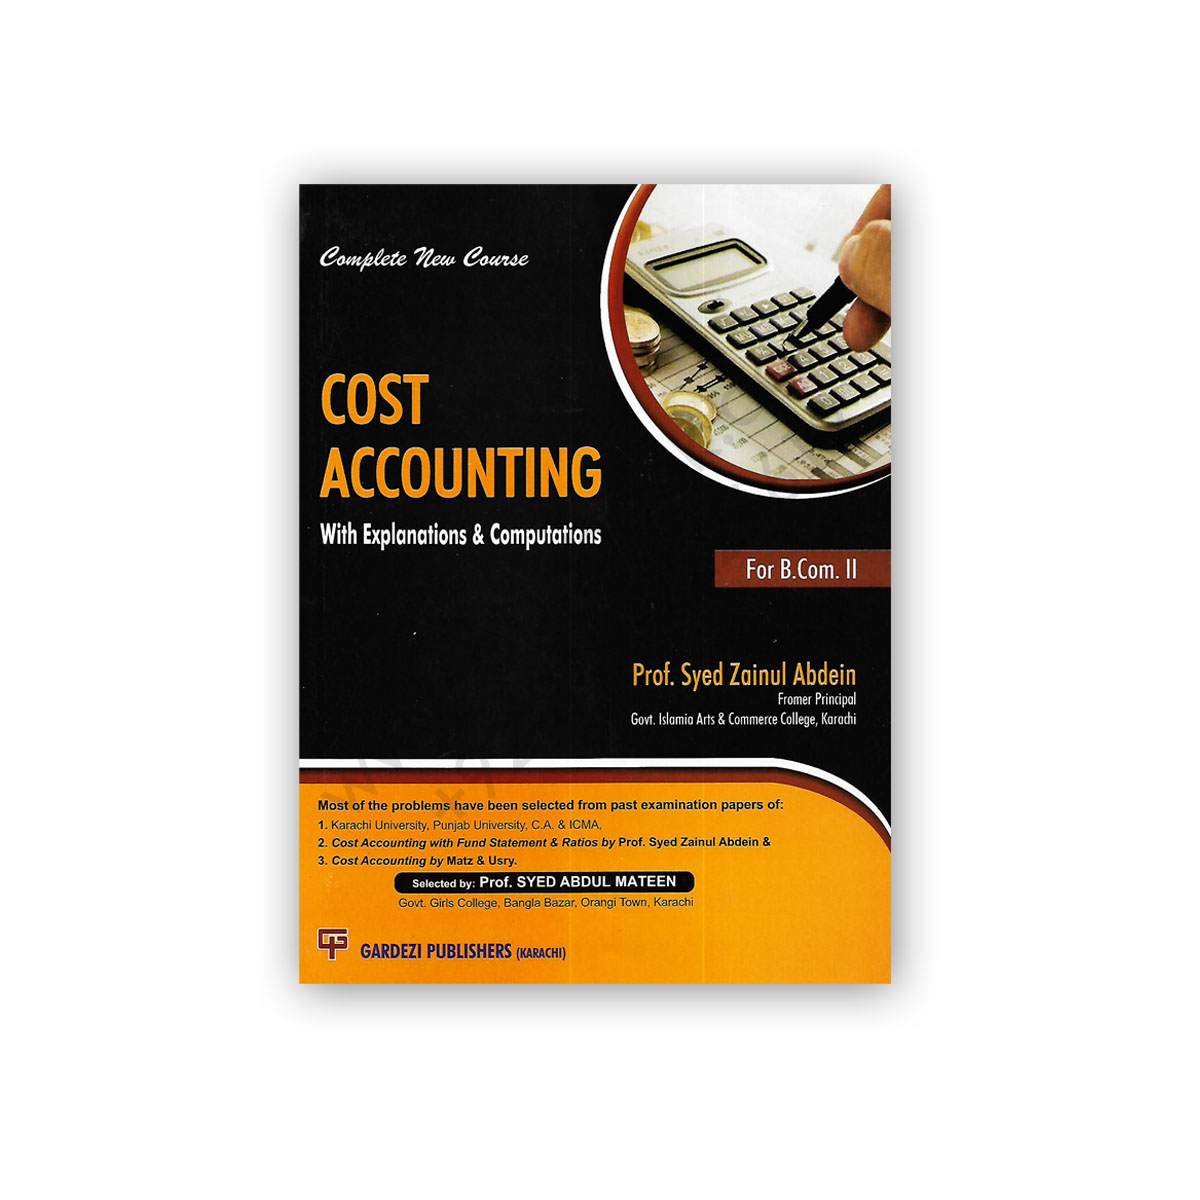 cost accouinting for bcom 2 by prof syed zainul abdein - gardezi publishers